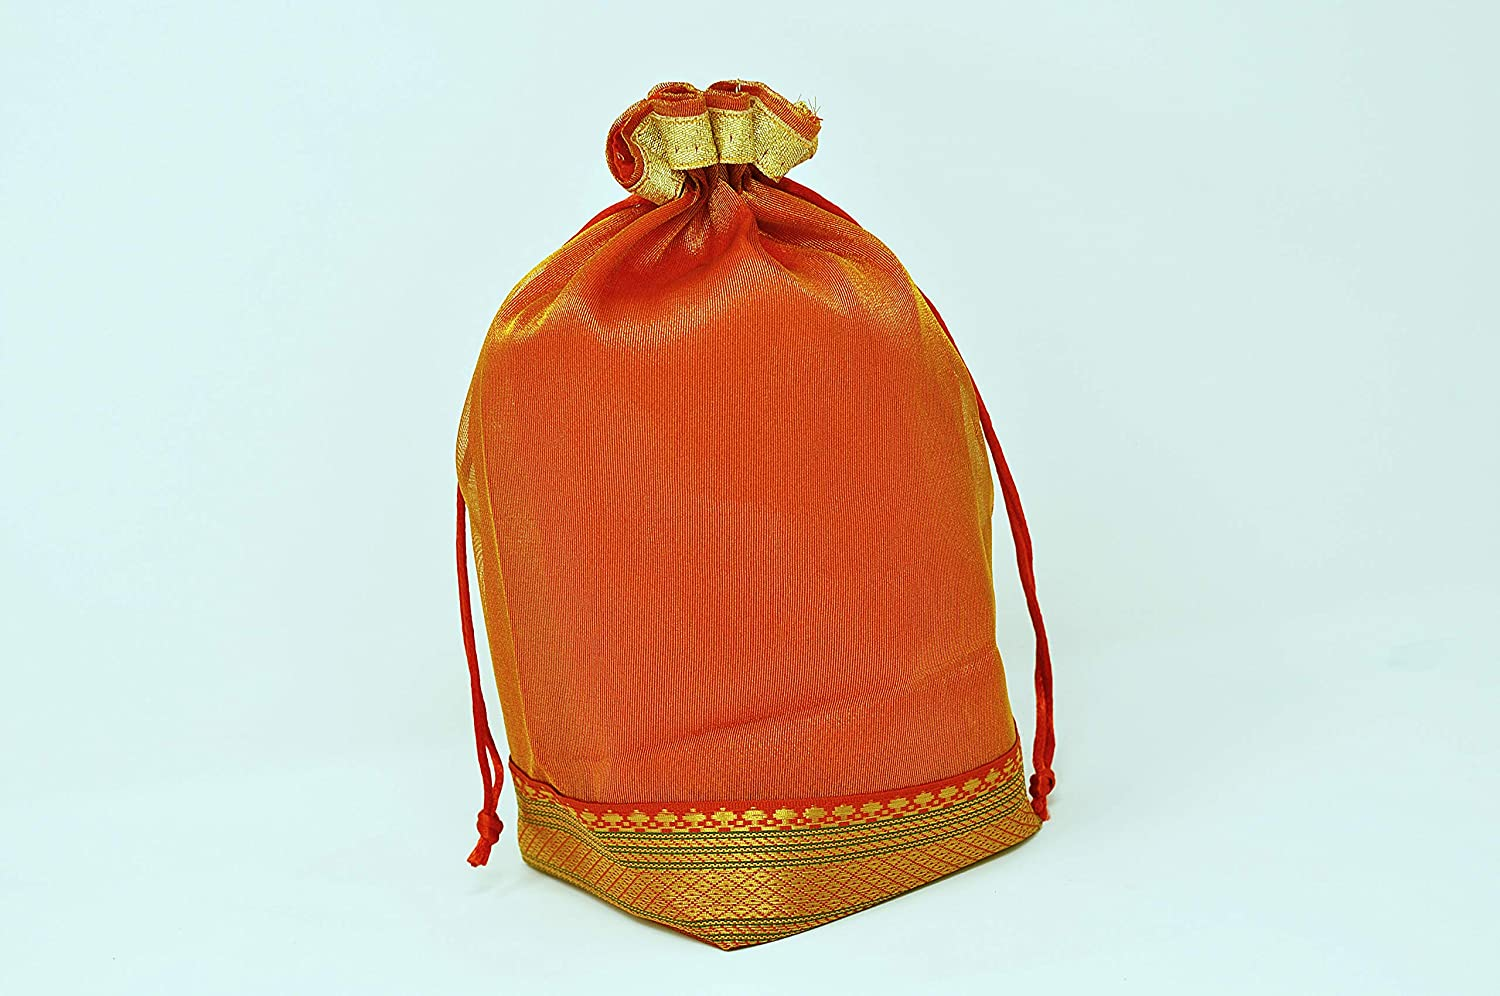 Desi Favors Set of 4 Organza Potli Bags/Drawstring Pouches with Red Lining and Gold Lace - Diwali Return Gifts/Party Favors-Jewelery Bags/Travel Pouches